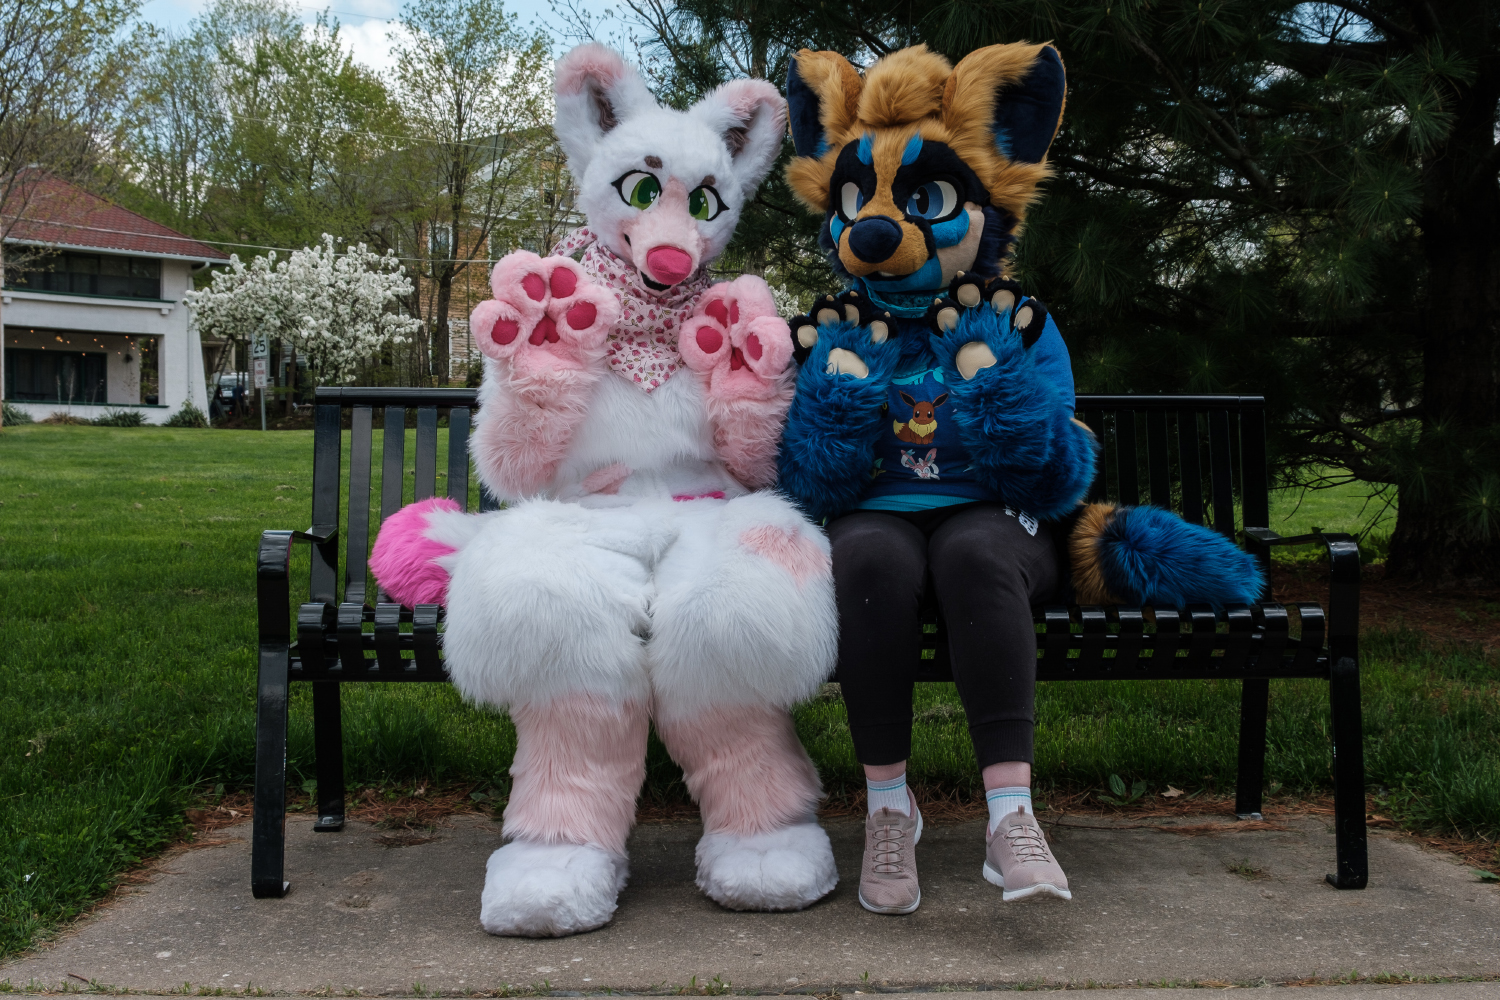 Vixie Valentine (left) and Salted Caramel (right) pose for a portrait in College Green park in Iowa City on Monday, May 6, 2019.